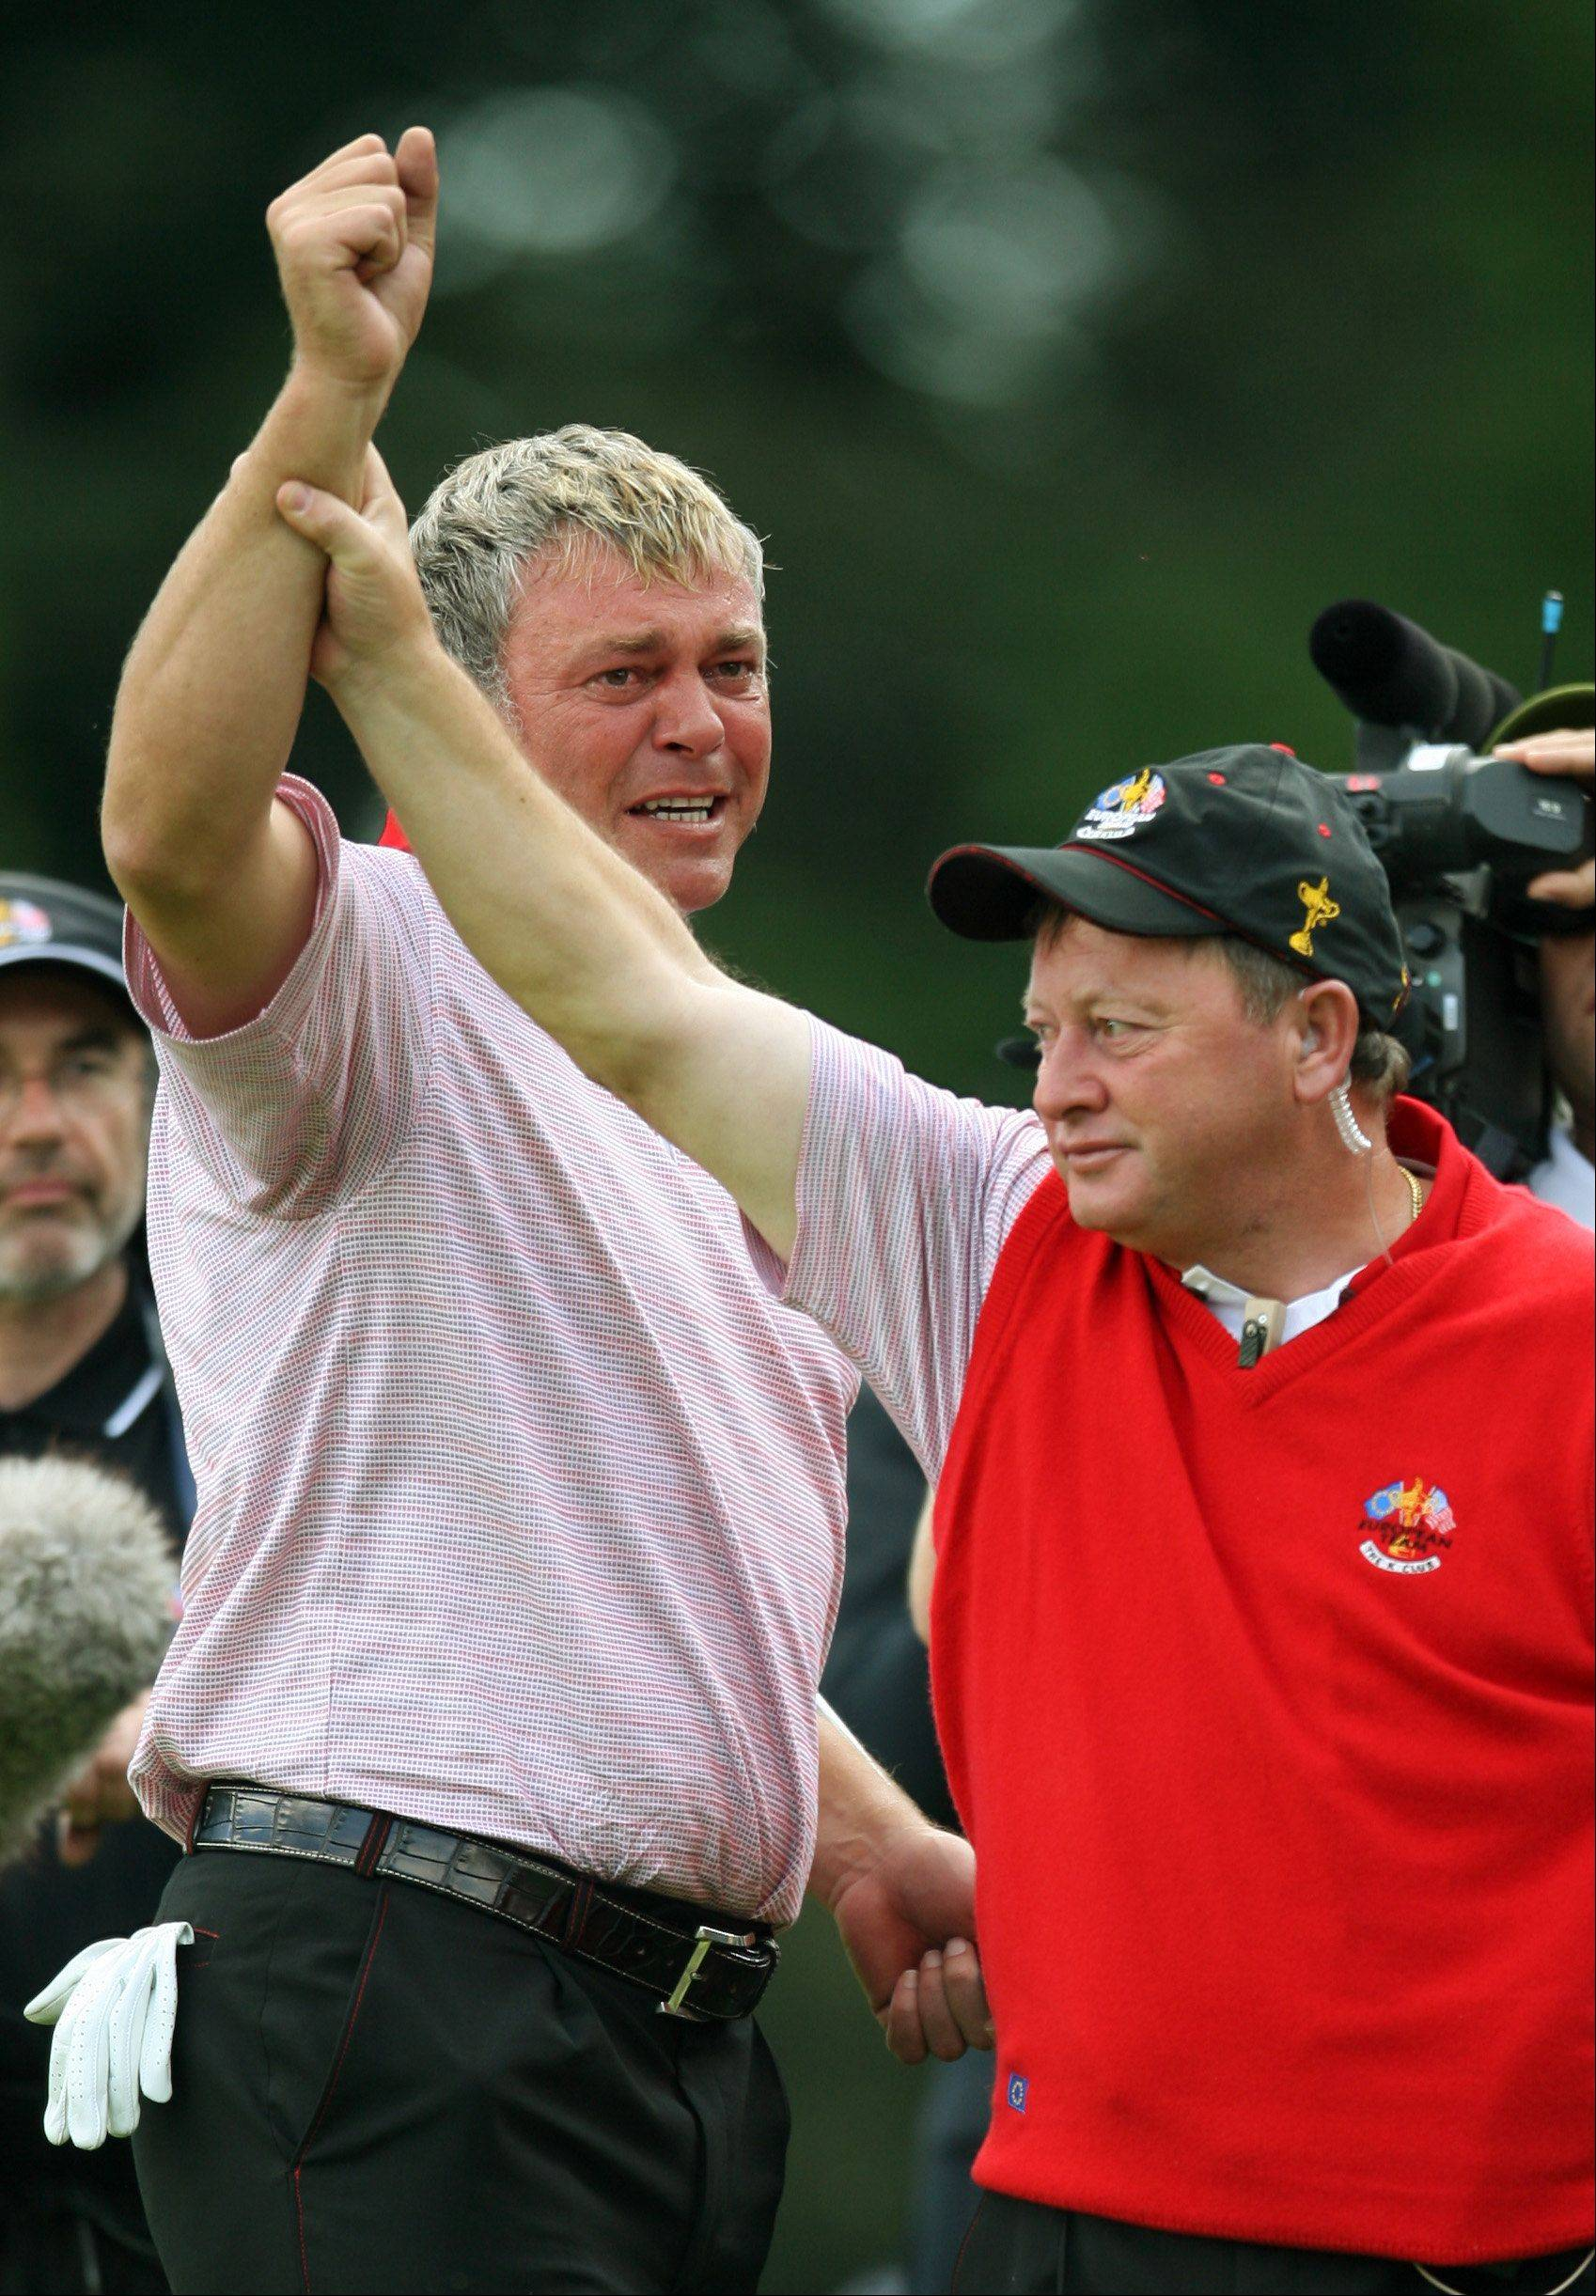 Europe's Darren Clarke's, arm is held aloft by team captain Ian Woosnam, right, on the 16th green after winning his singles match against Zach Johnson of the United States on the last day of the 2006 Ryder Cup at the K Club golf course, Straffan, Ireland, Sunday Sept. 24, 2006. Clarke won the match 3 and 2. The European team earlier retained the Ryder Cup, Clarke, hero of the 2006 Cup for the Europeans, lost his wife shortly before the 2006 Cup,